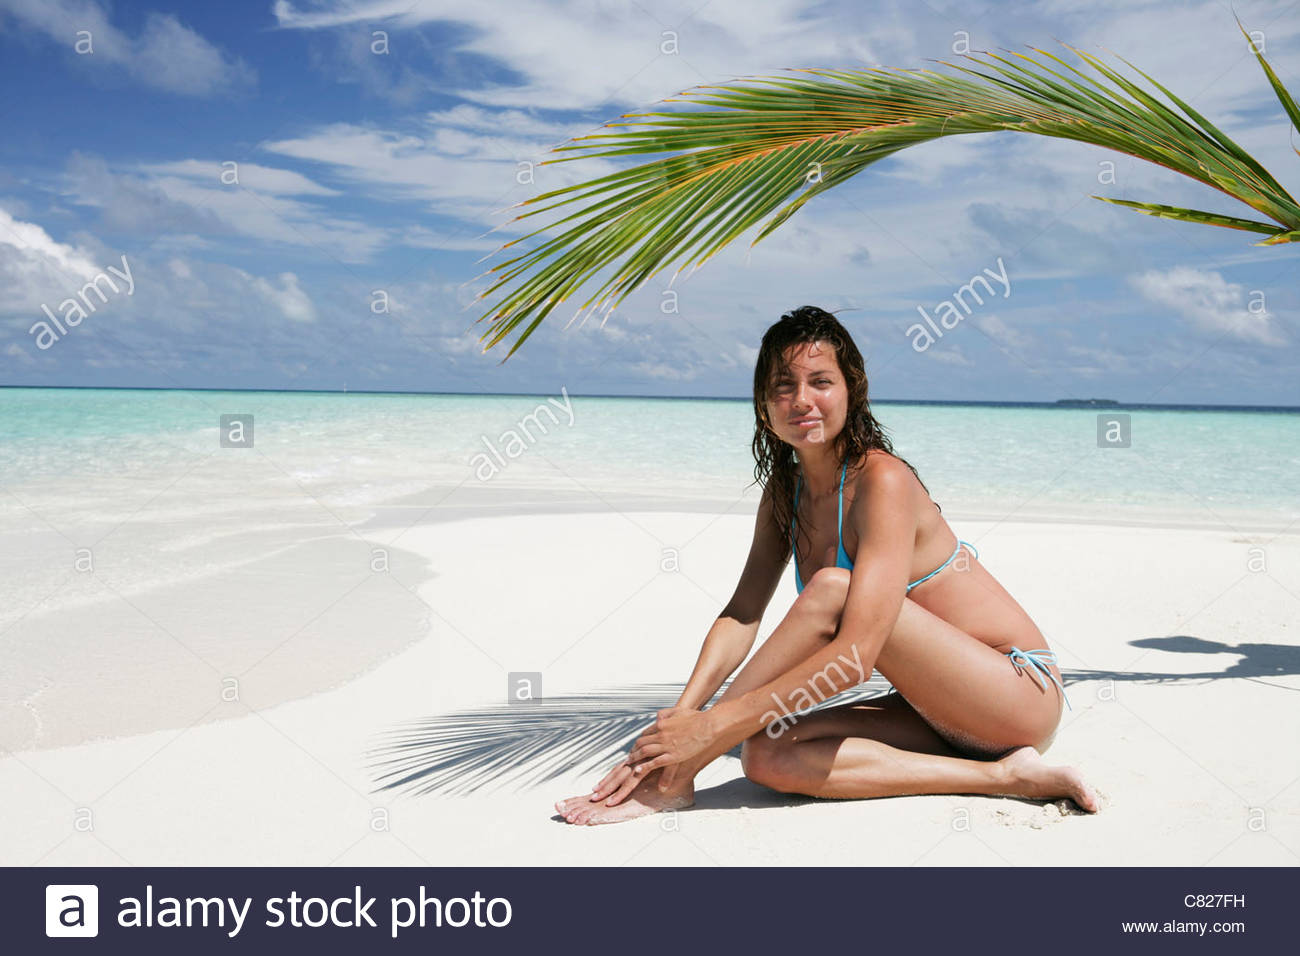 Woman's portrait sitting on beach - Stock Image